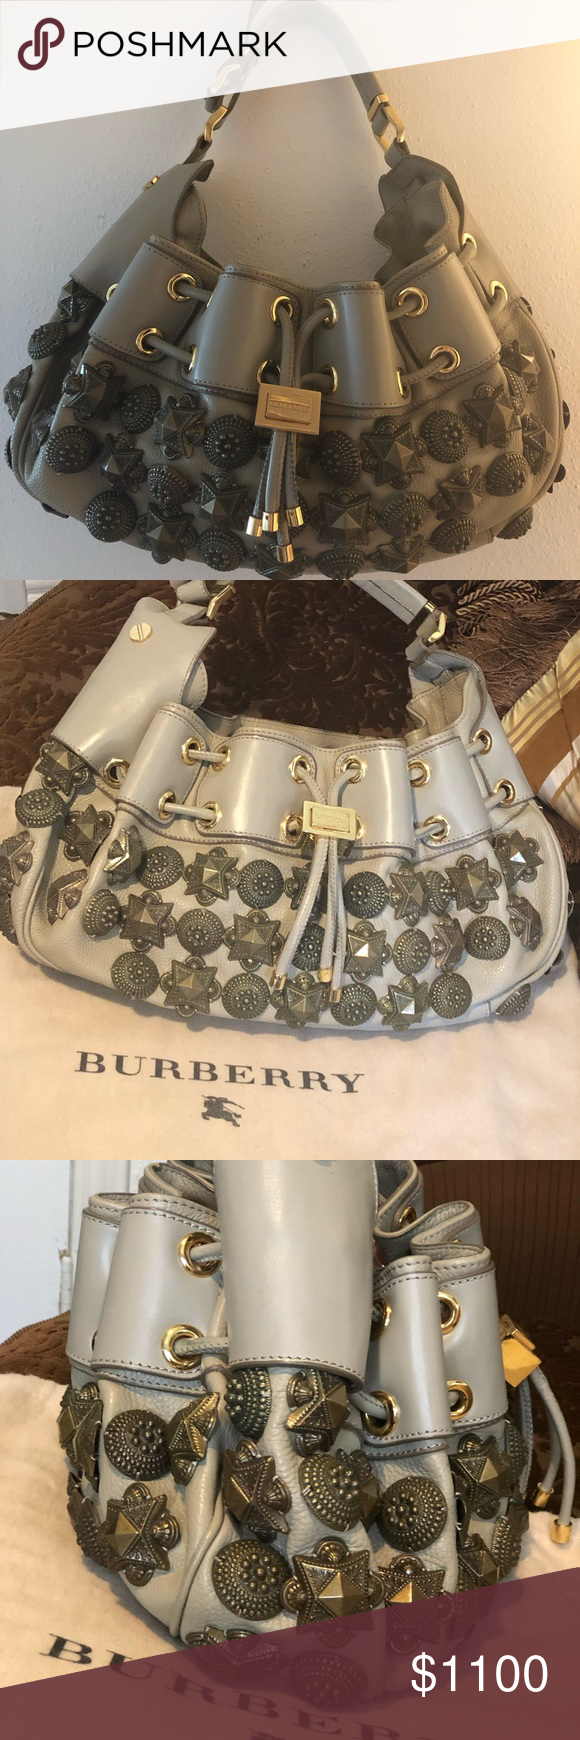 BURBERRY Prorsum Mason Warrior Studded Hobo Bag RARE 2008 LARGE Leather  Runway Gray Leather Burberry Prorsum c7be3a7aaa24d